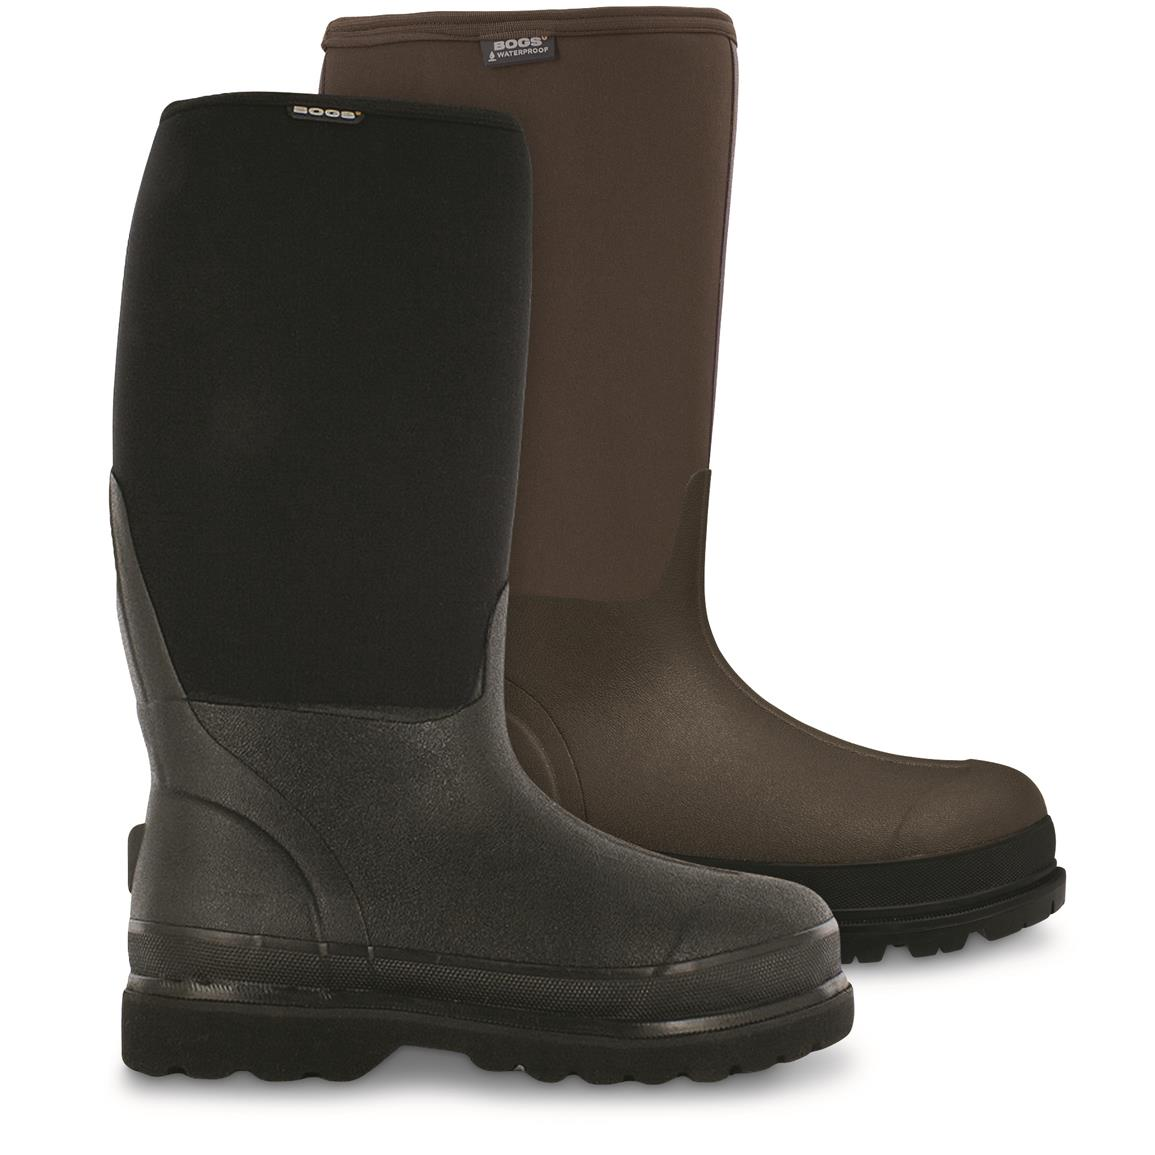 Bogs Men's Rancher Winter Rubber Boots